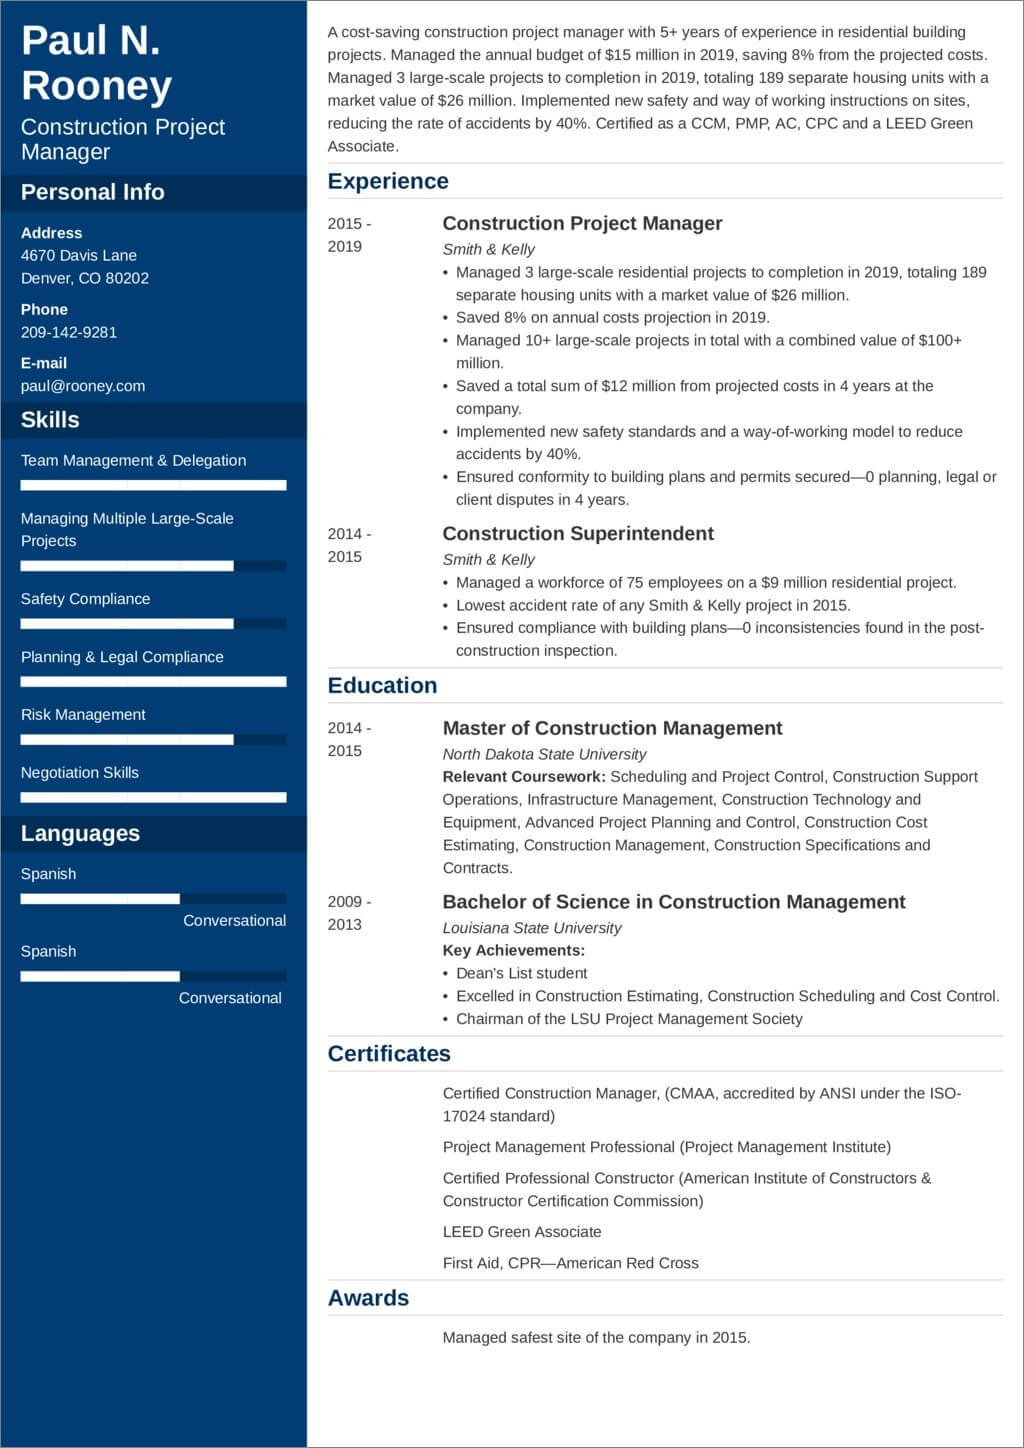 construction project manager resume sample and tips management professional rl travel Resume Project Management Professional Resume Sample